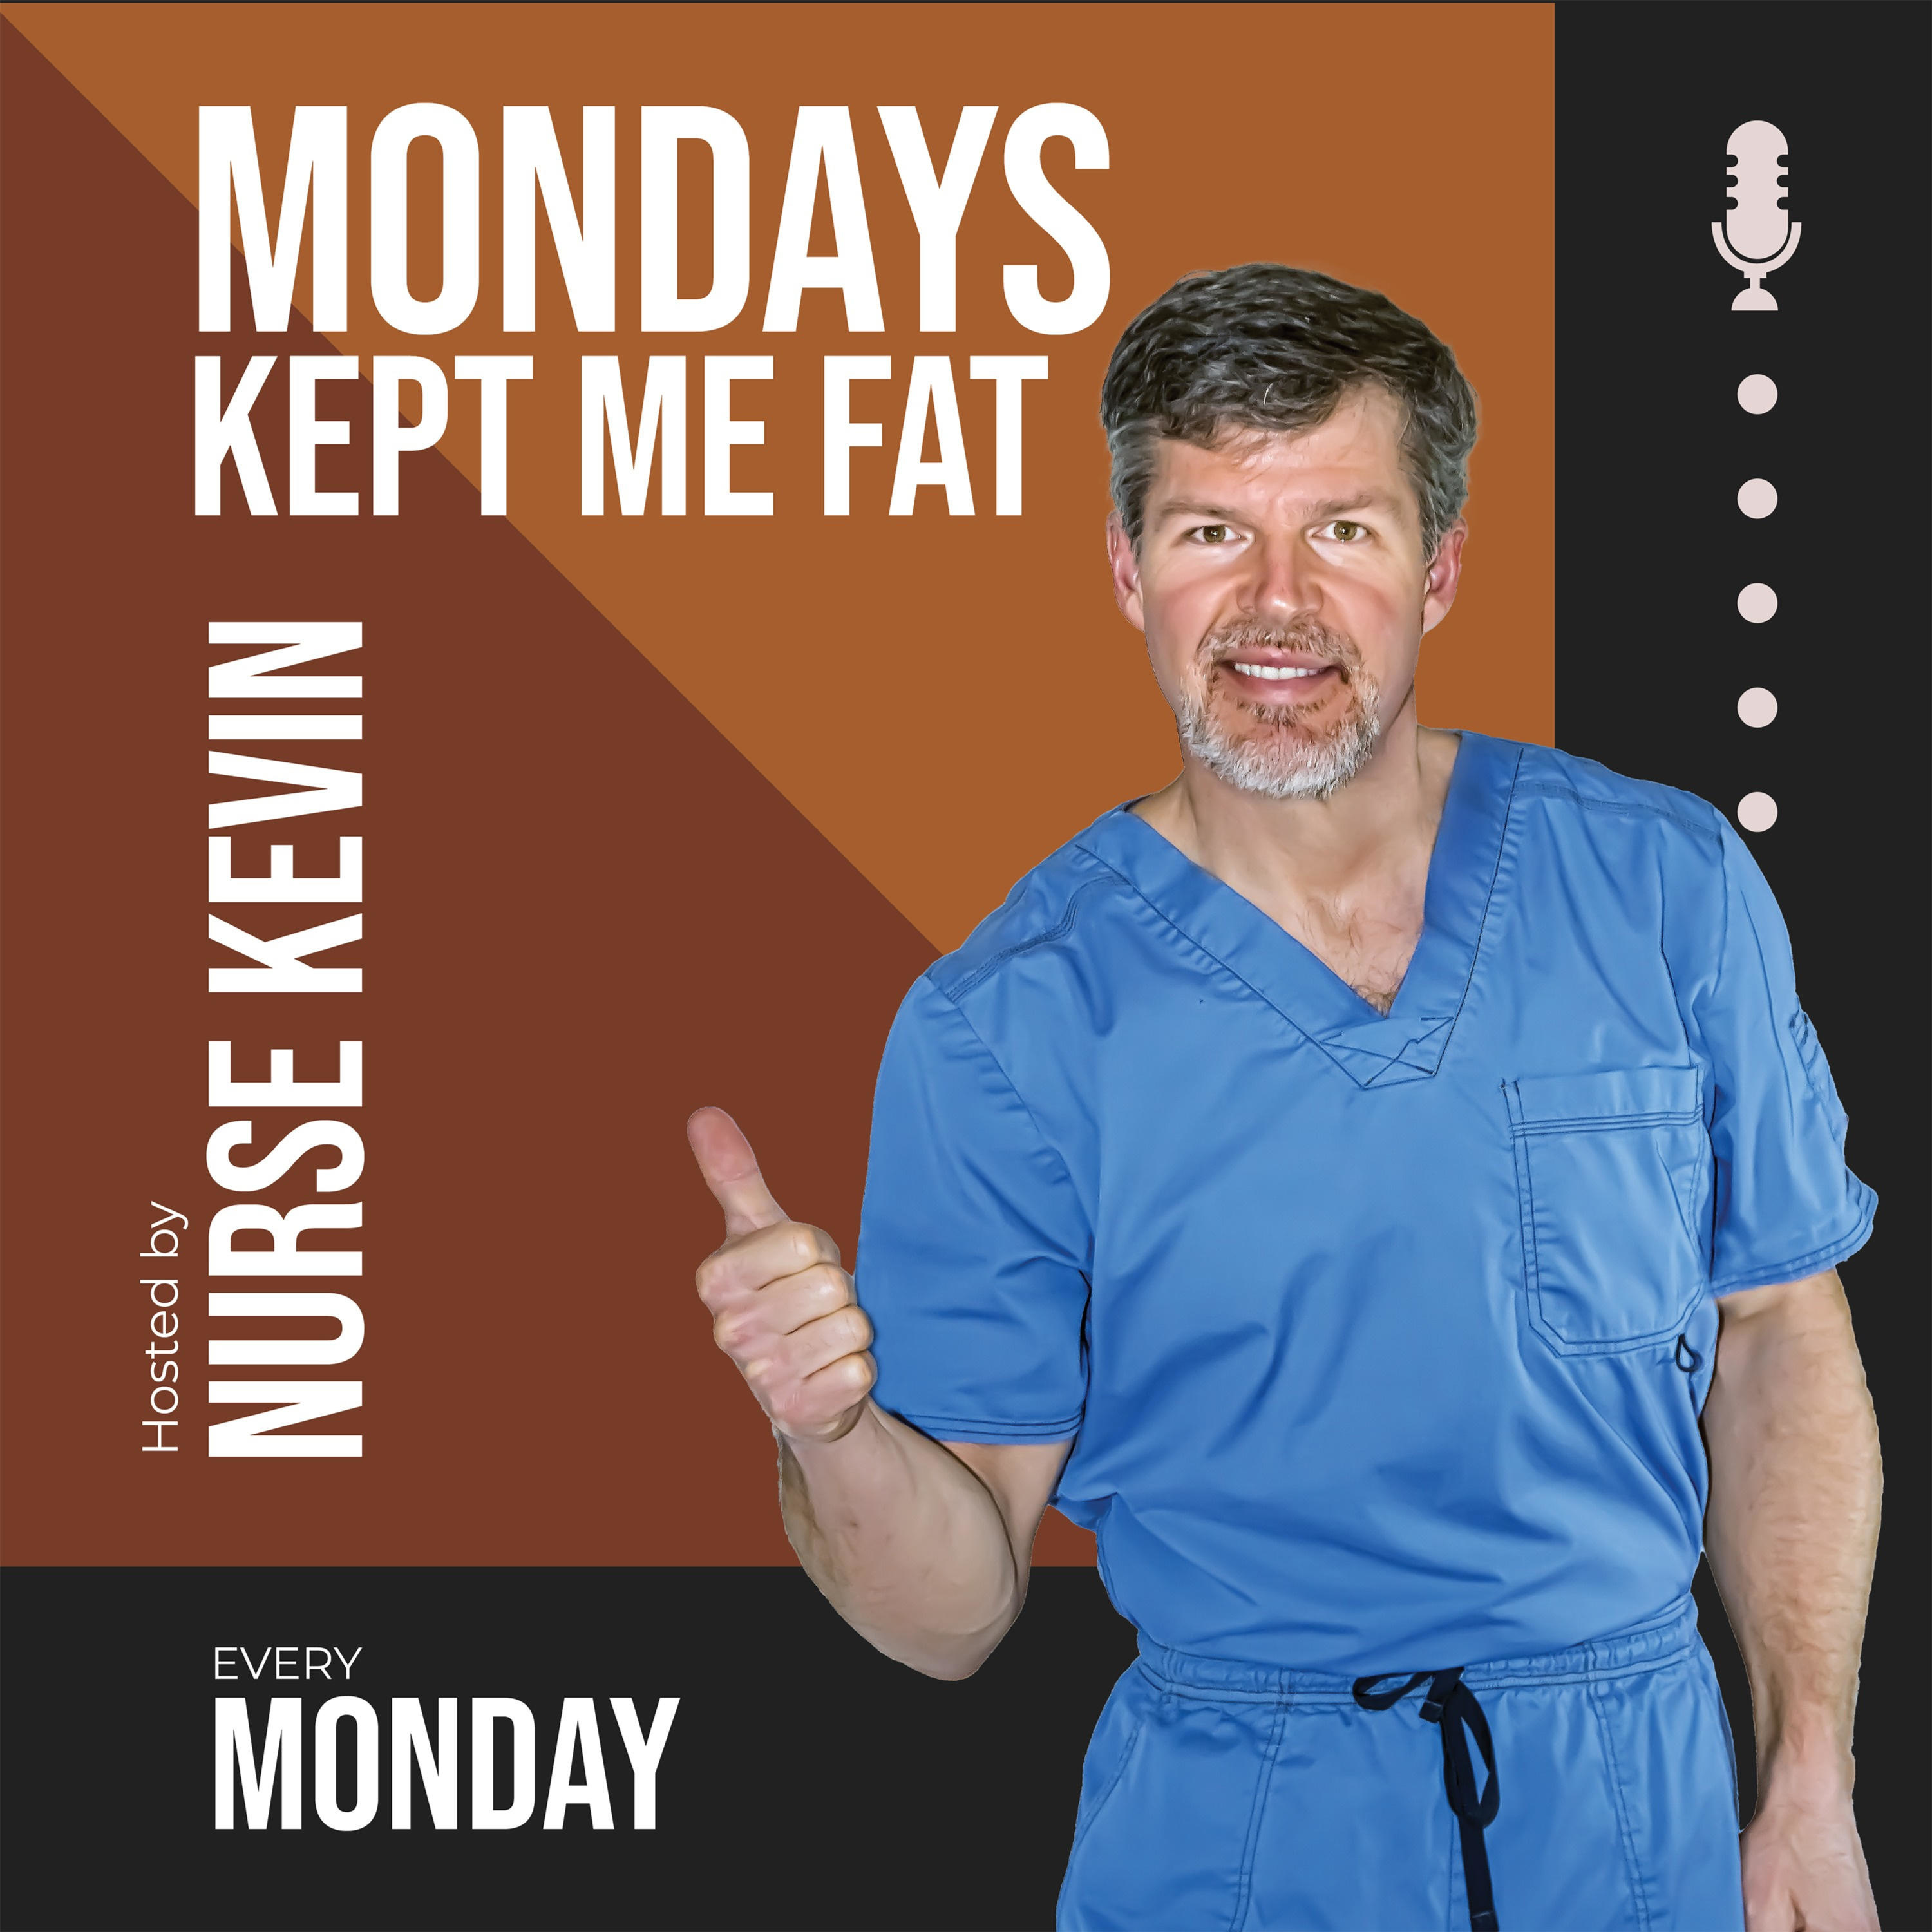 Mondays Kept Me Fat - The Health and Weight Loss Show That Will Keep You Started